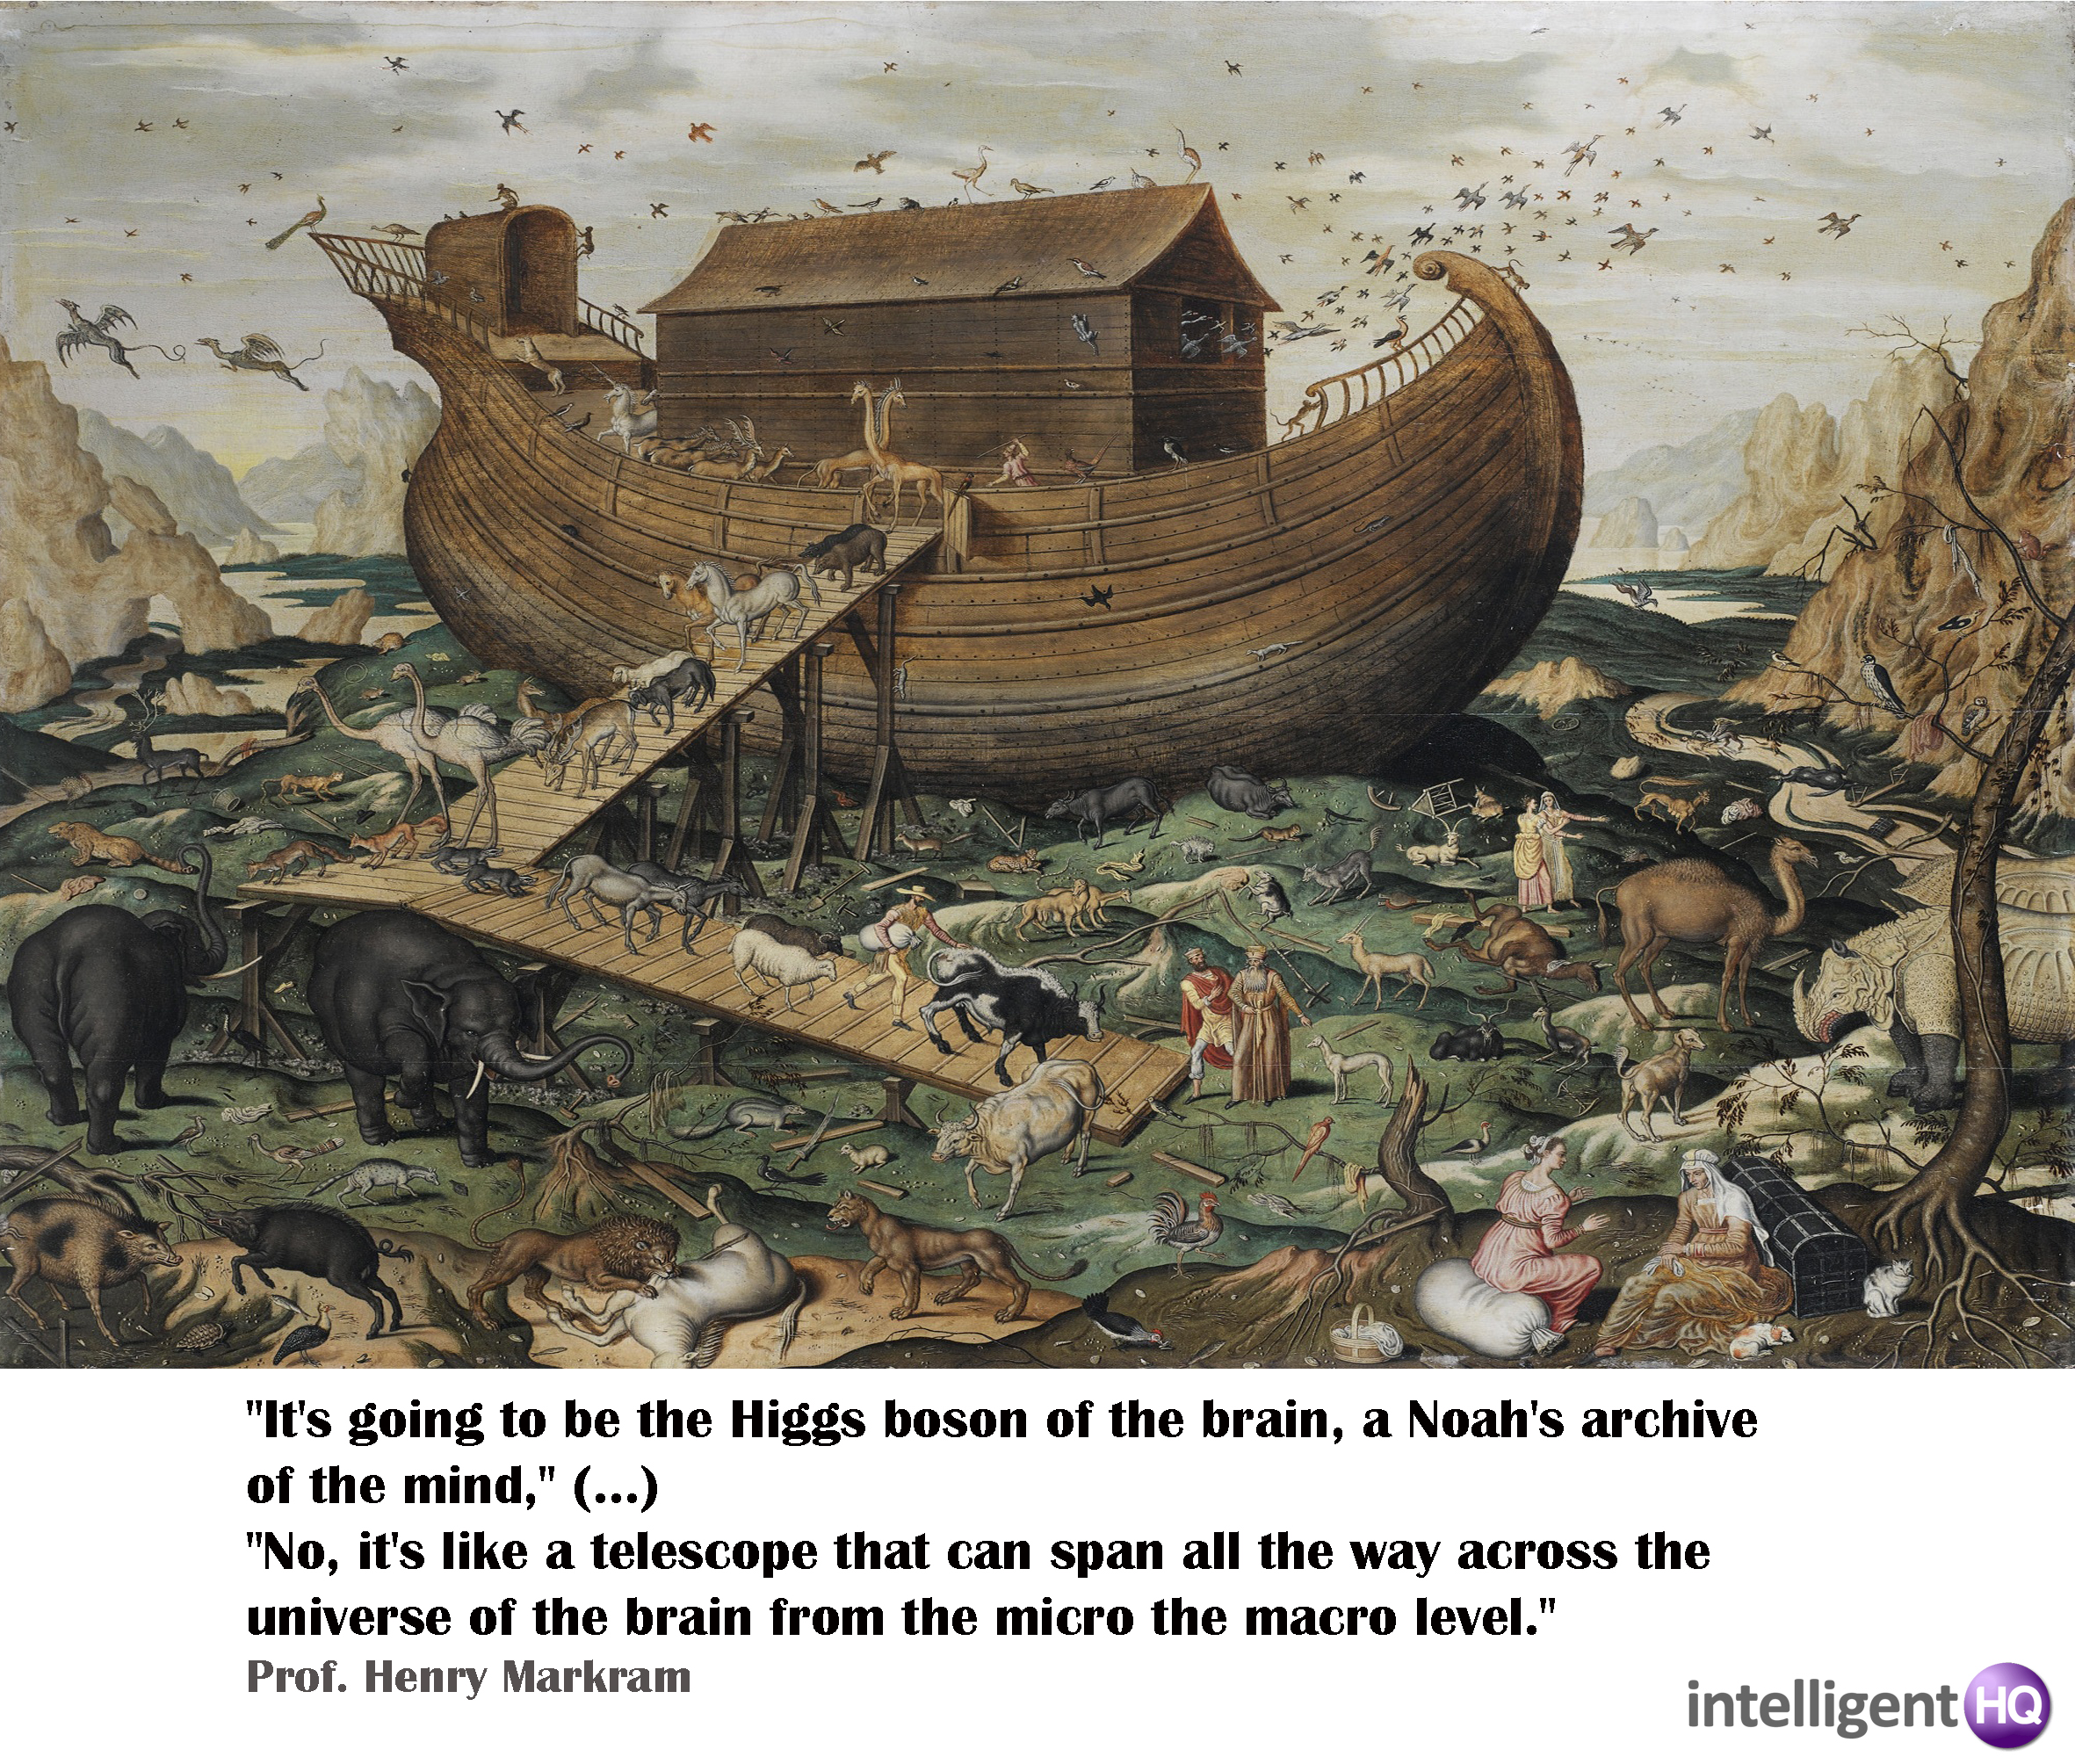 Noah Archive of The Mind